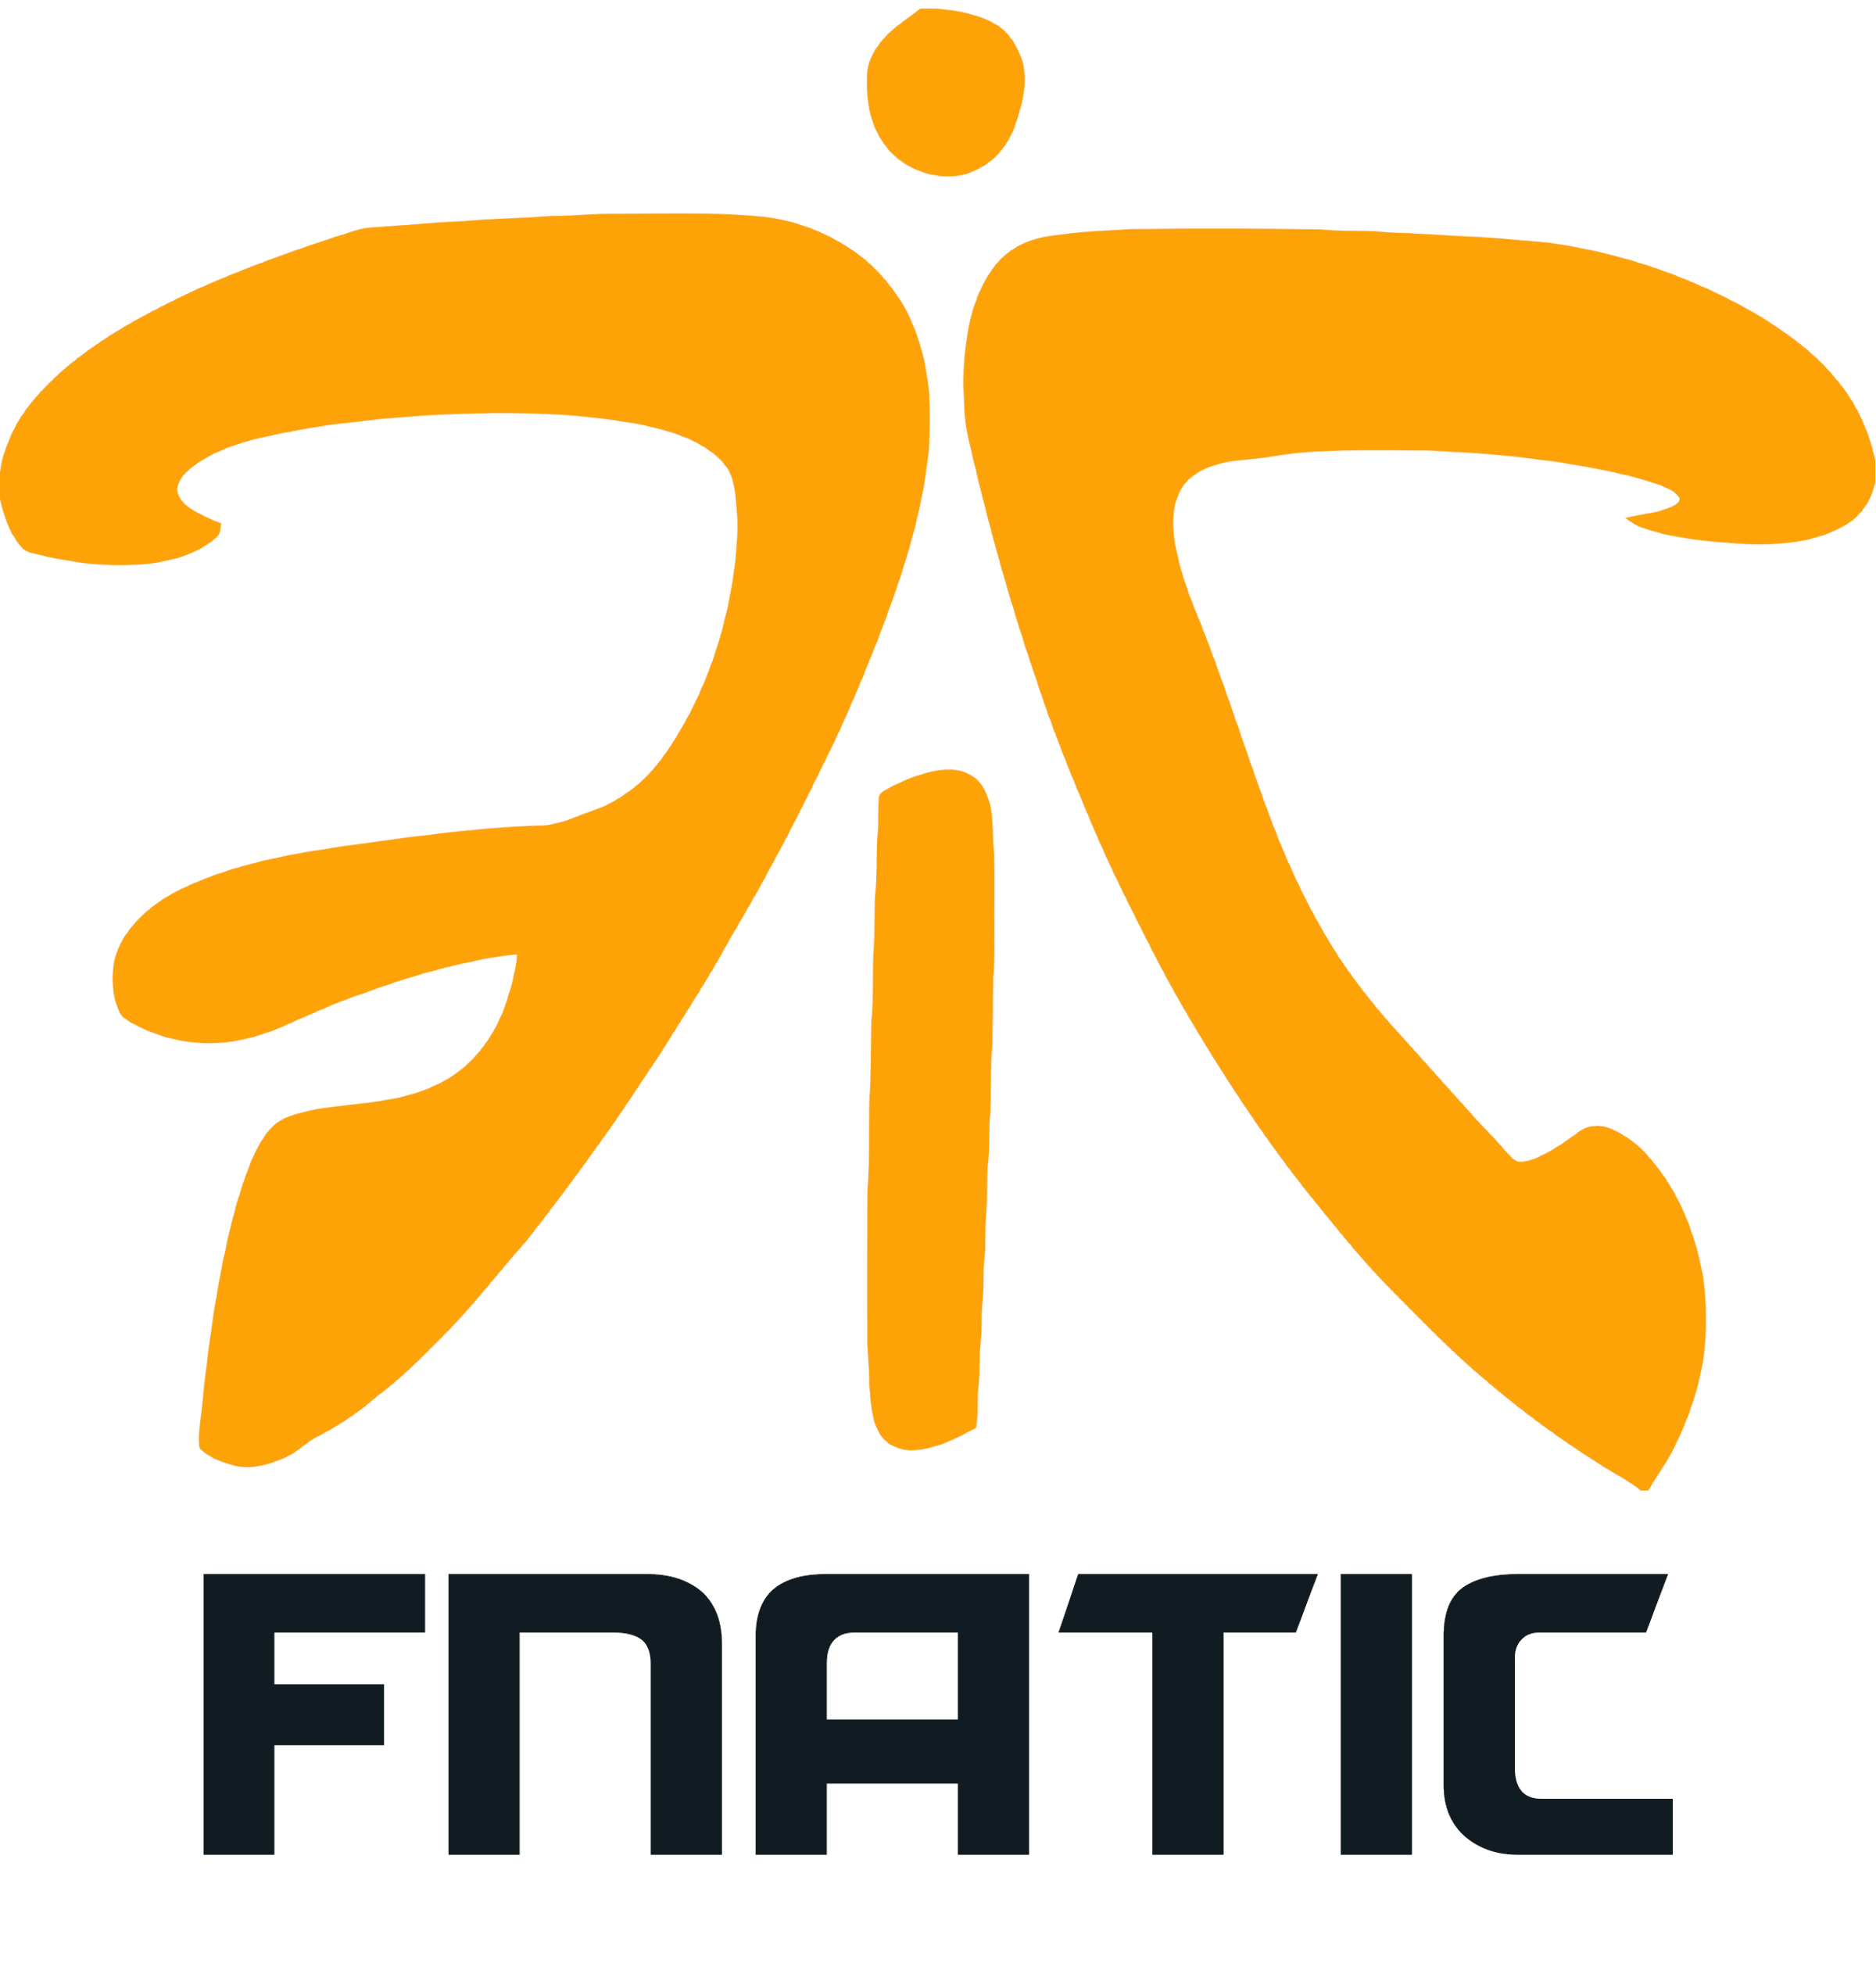 https://logos-download.com/wp-content/uploads/2016/06/Fnatic_logo_wordmark.png логотип